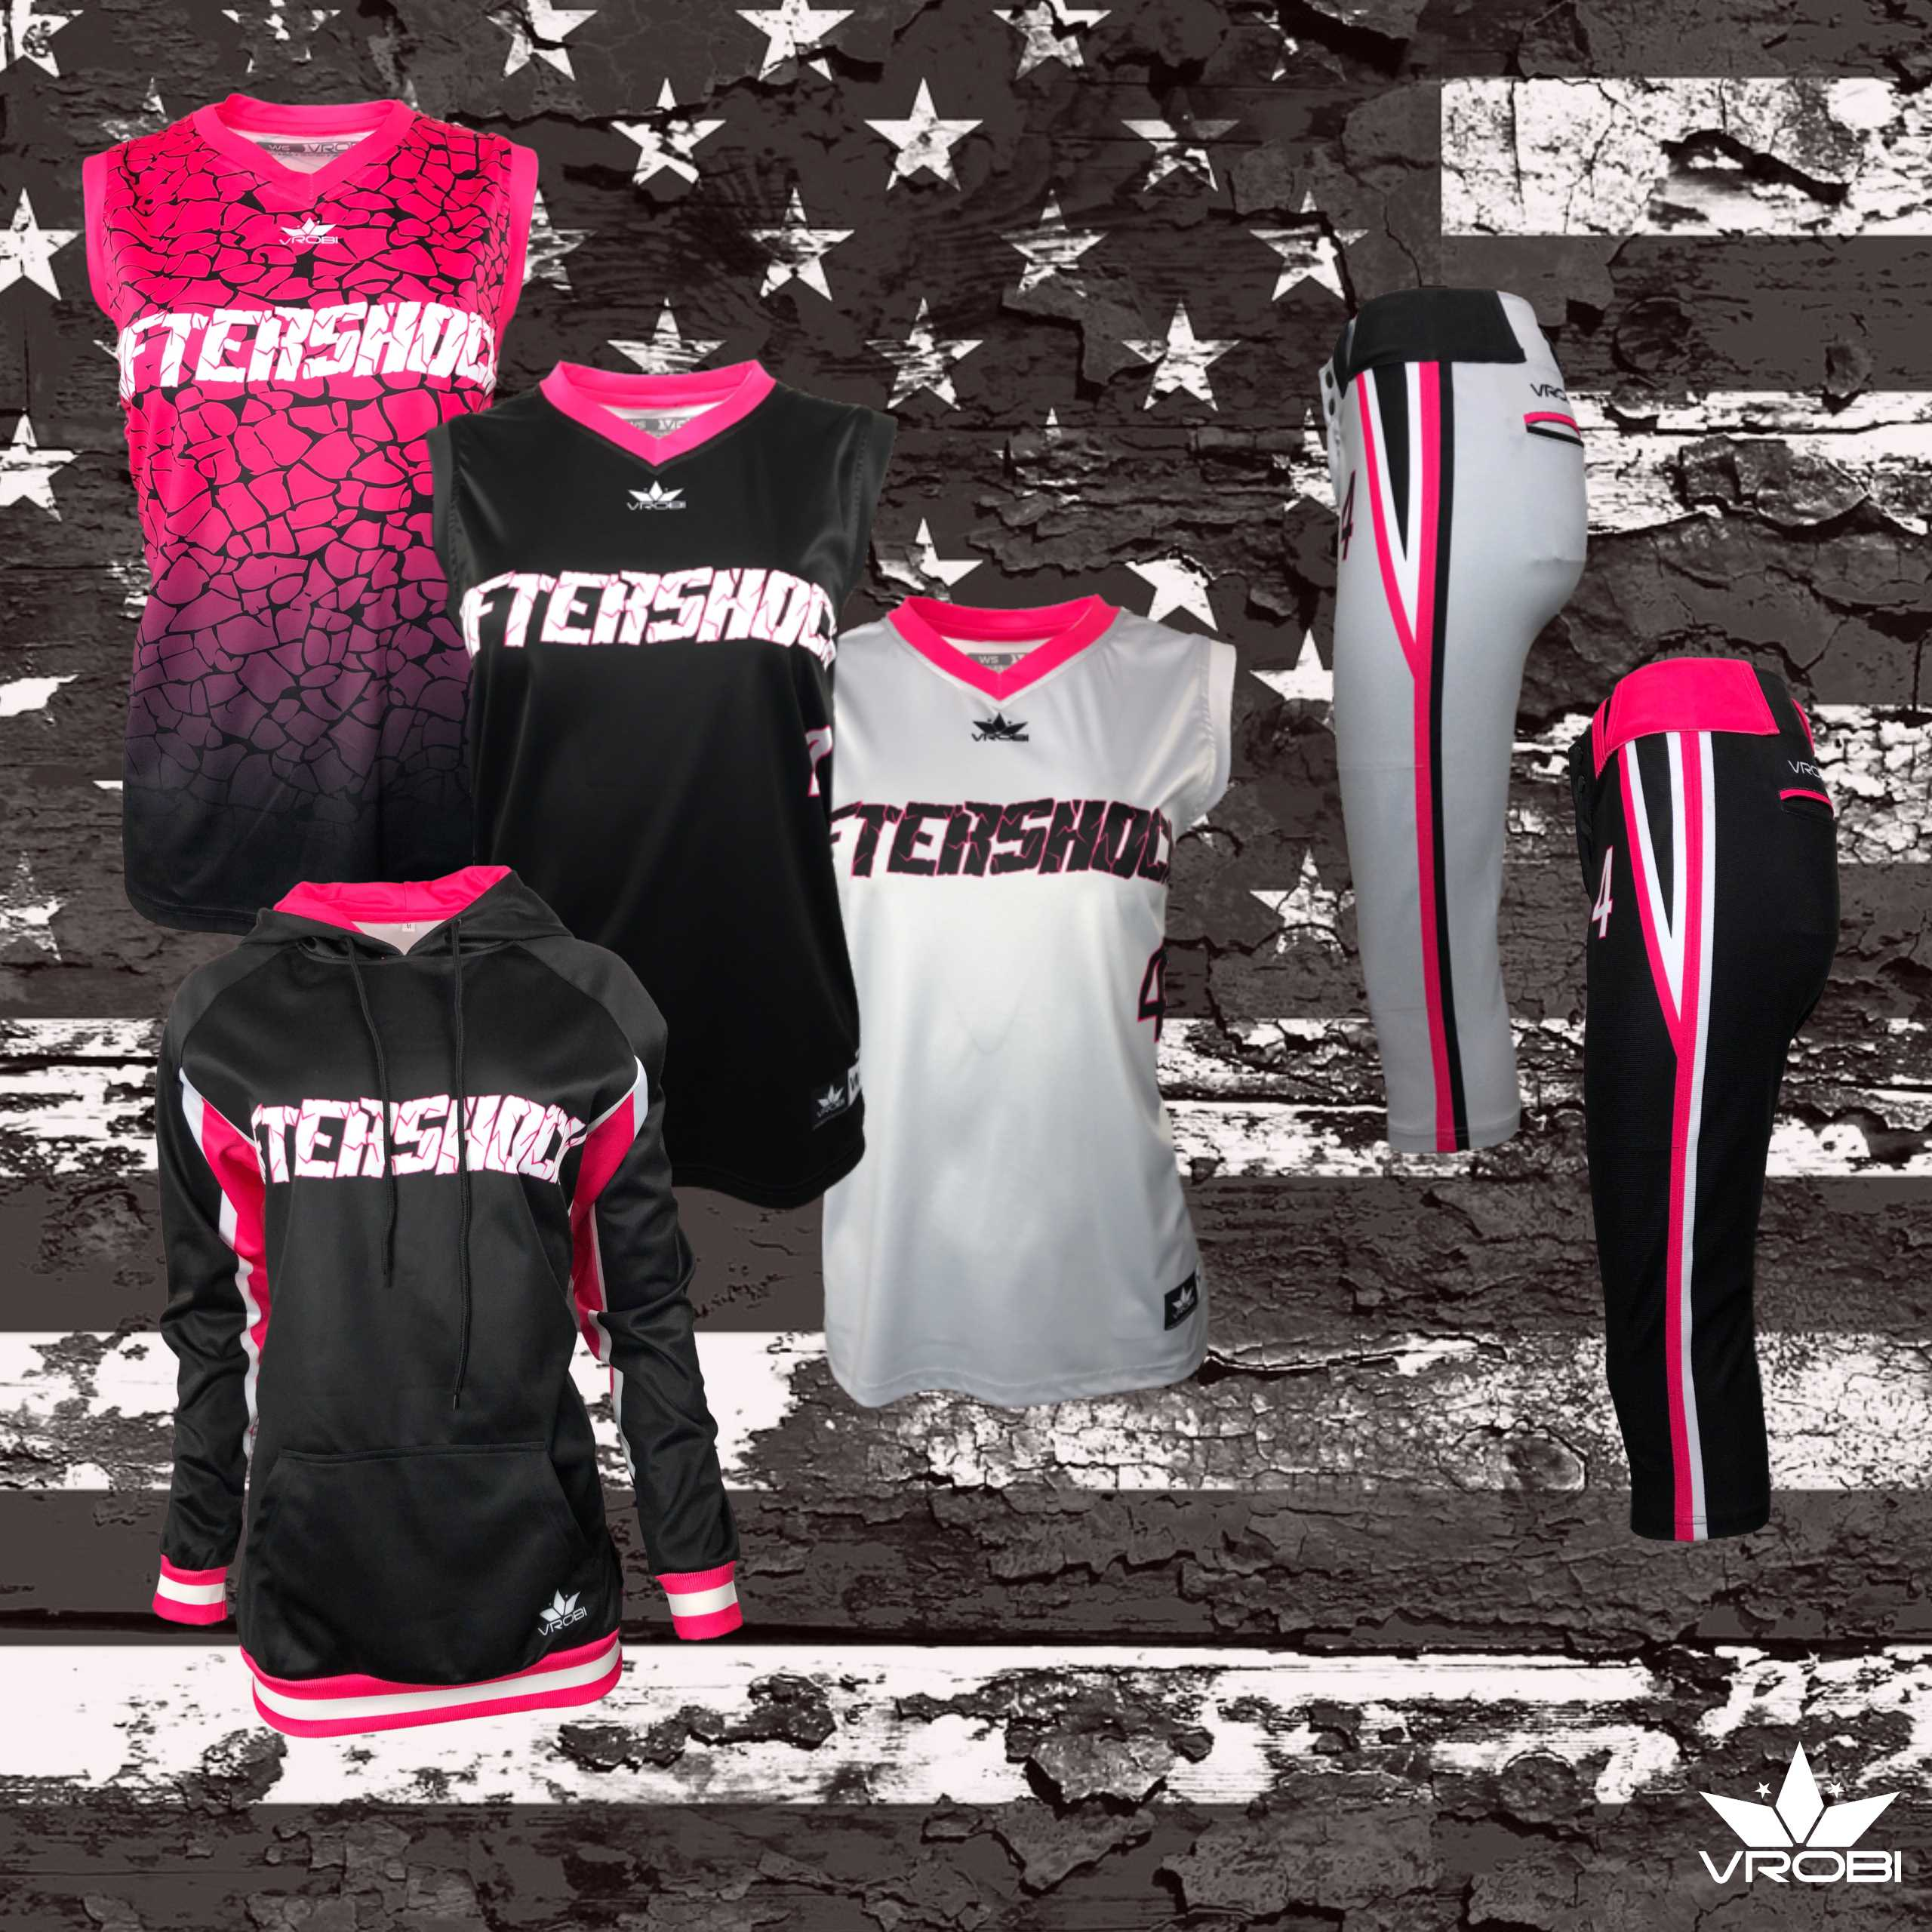 Gold Team Package for Softball Teams showing Fully Sublimated Uniforms